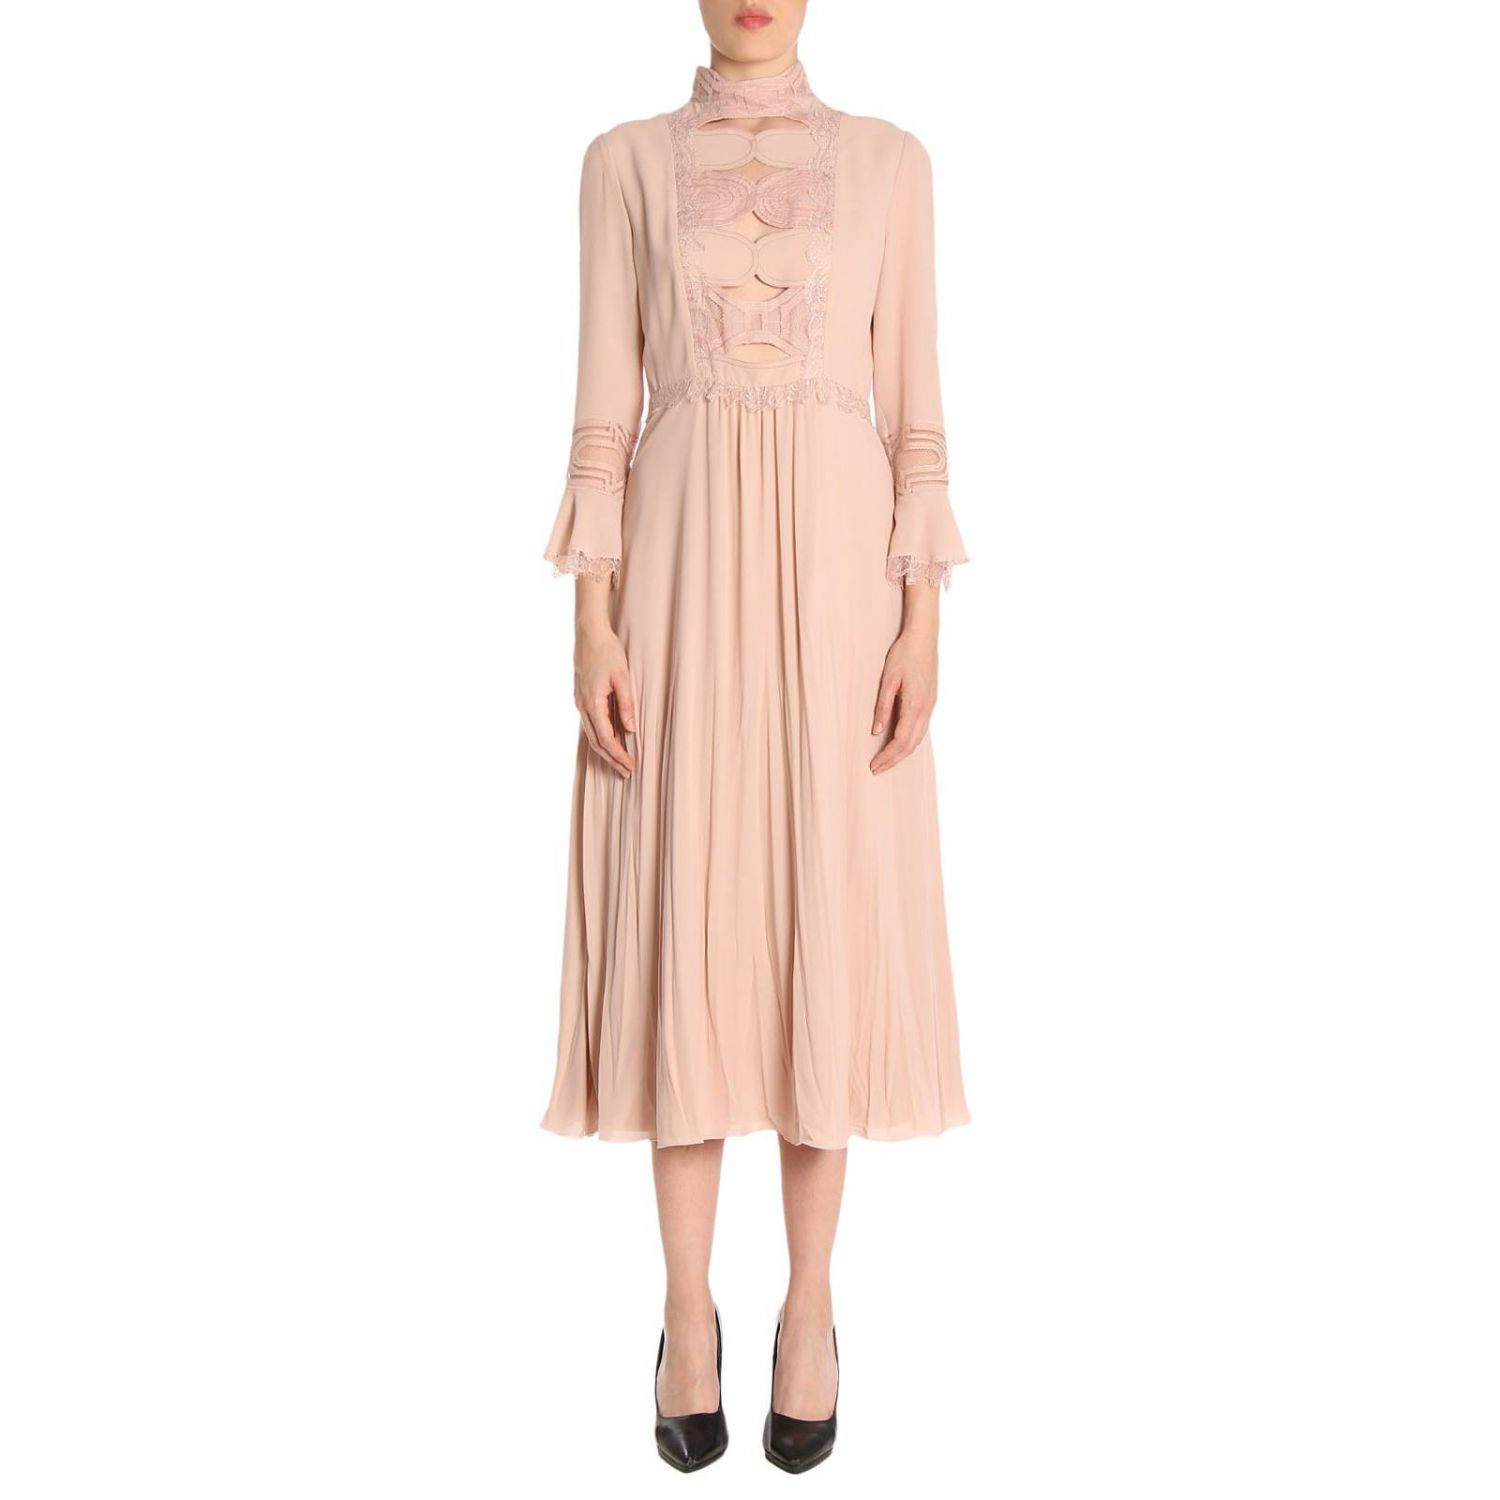 Dress Bottega Veneta: Dress women Bottega Veneta blush pink 1